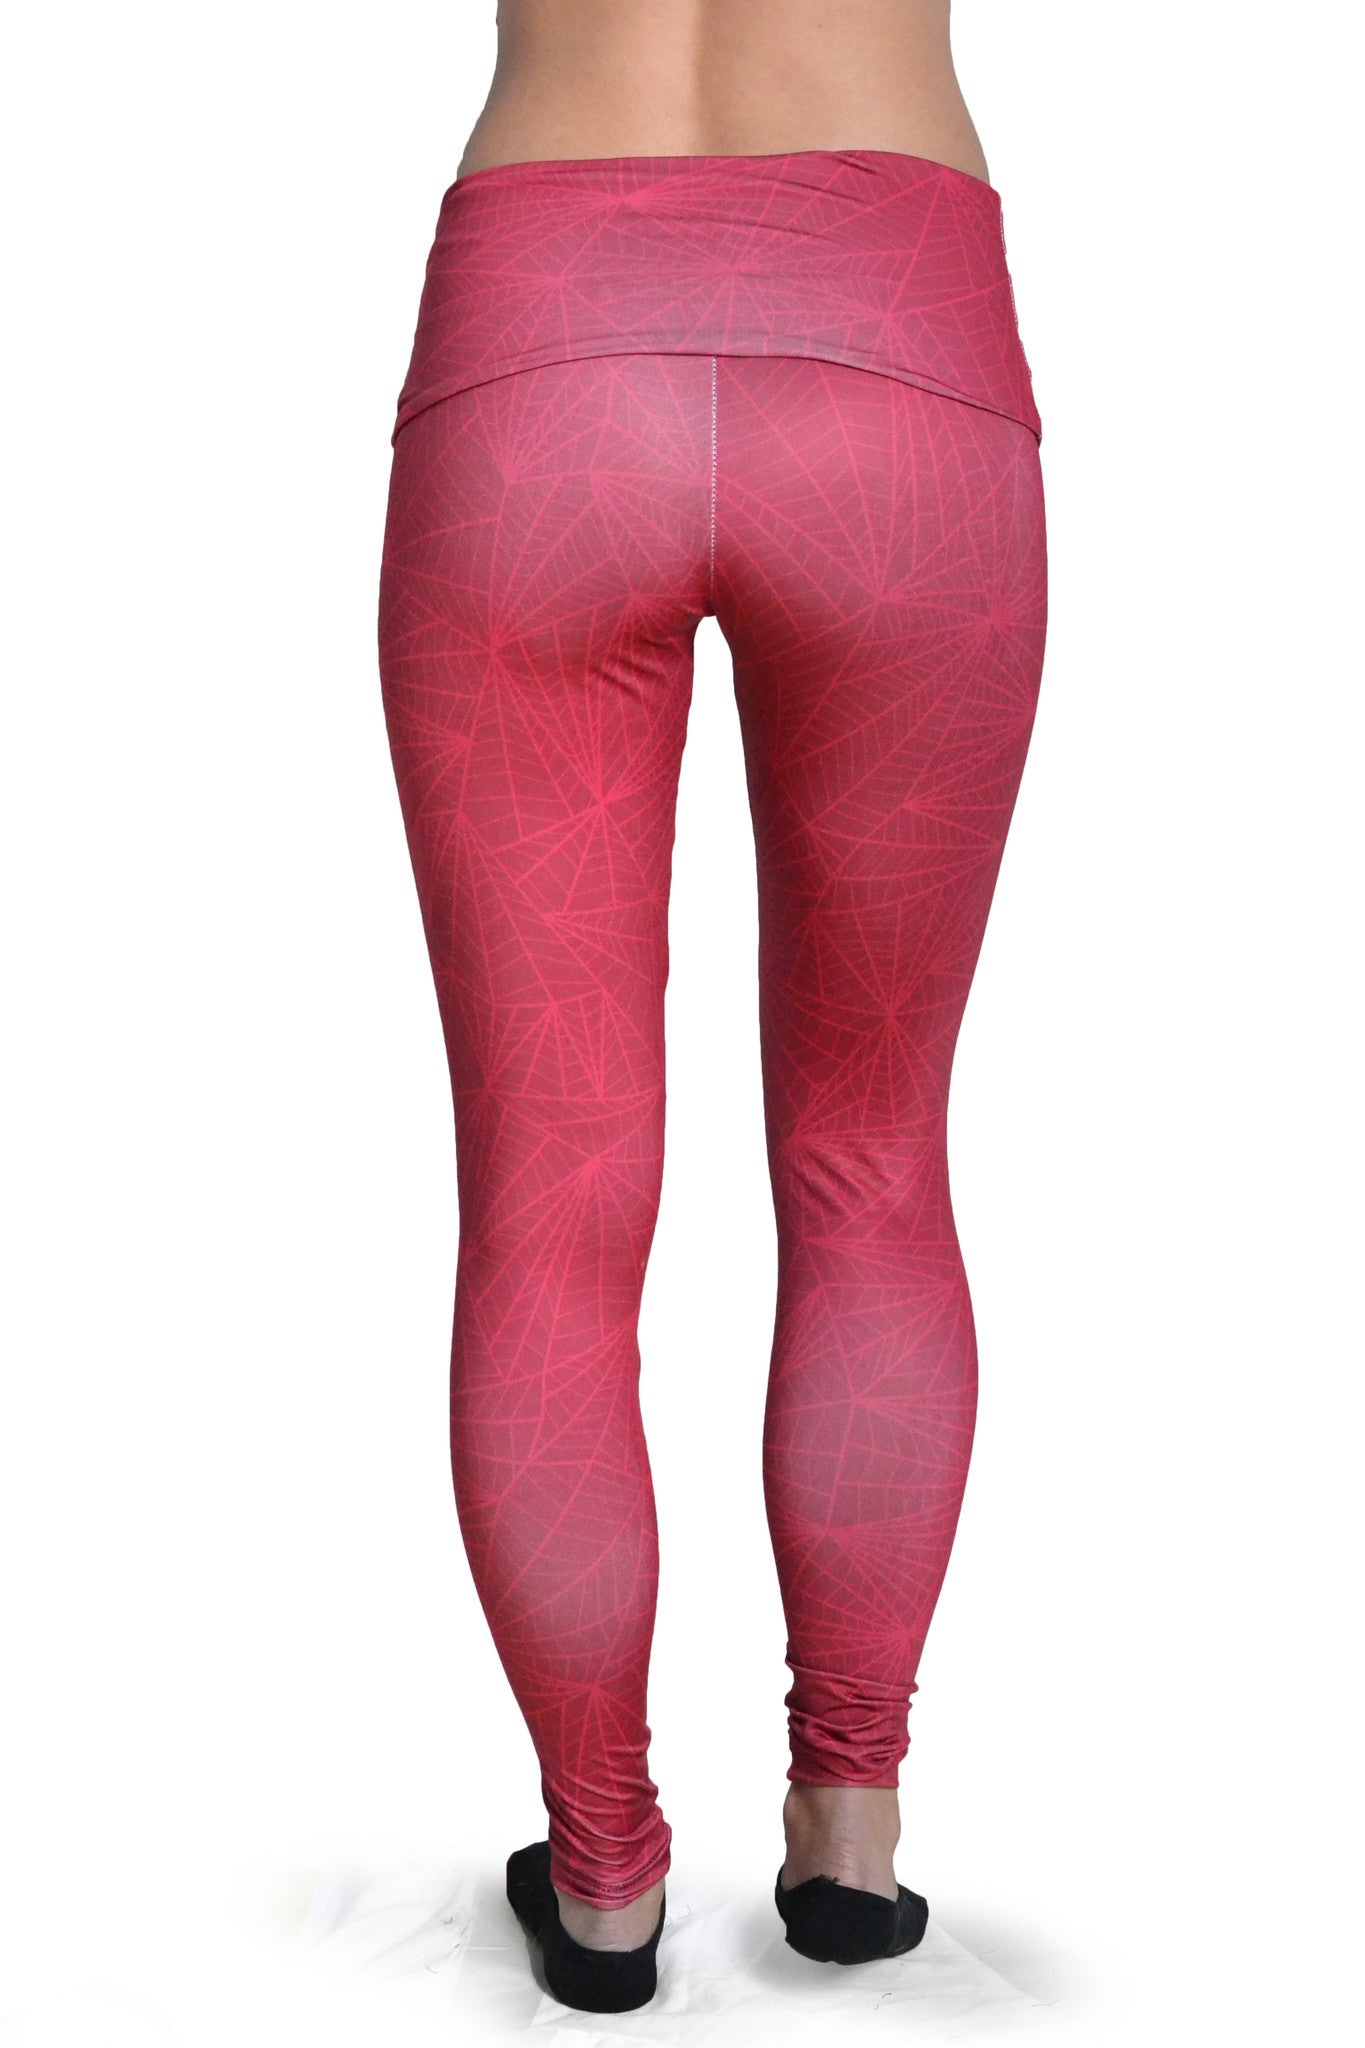 Women's Graphic All Over Print Red Fern Yoga Leggings Back